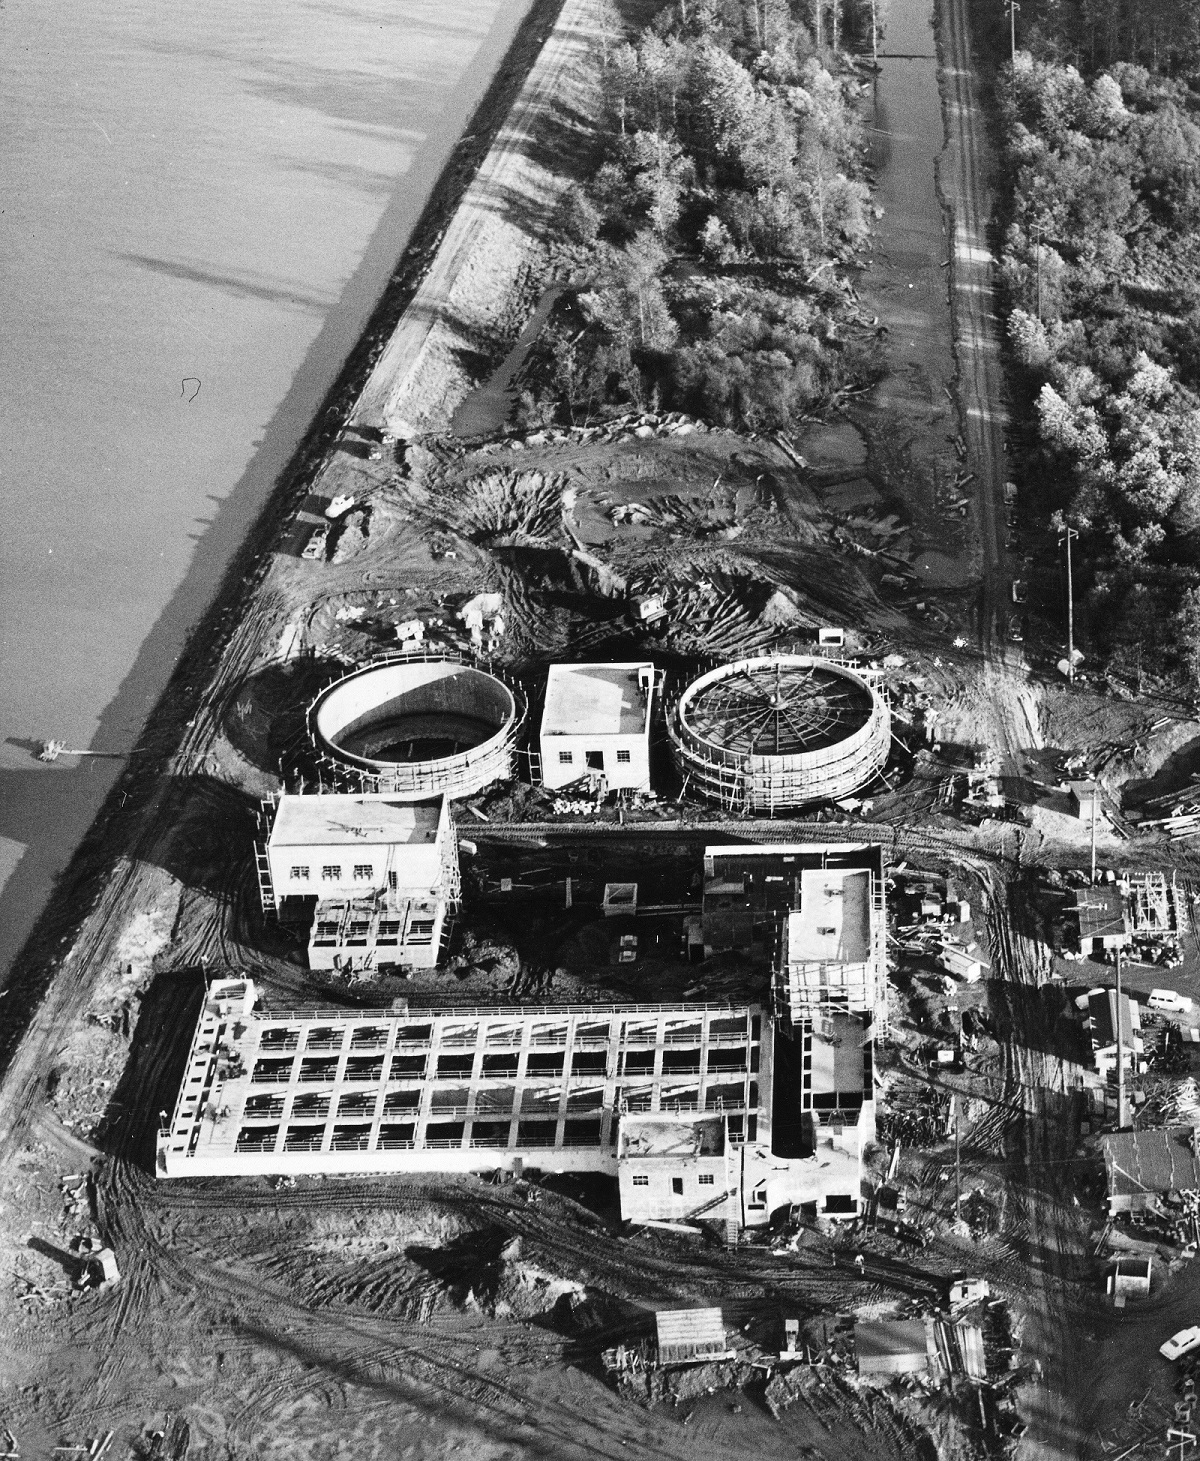 Central Wastewater Treatment Plant 1951